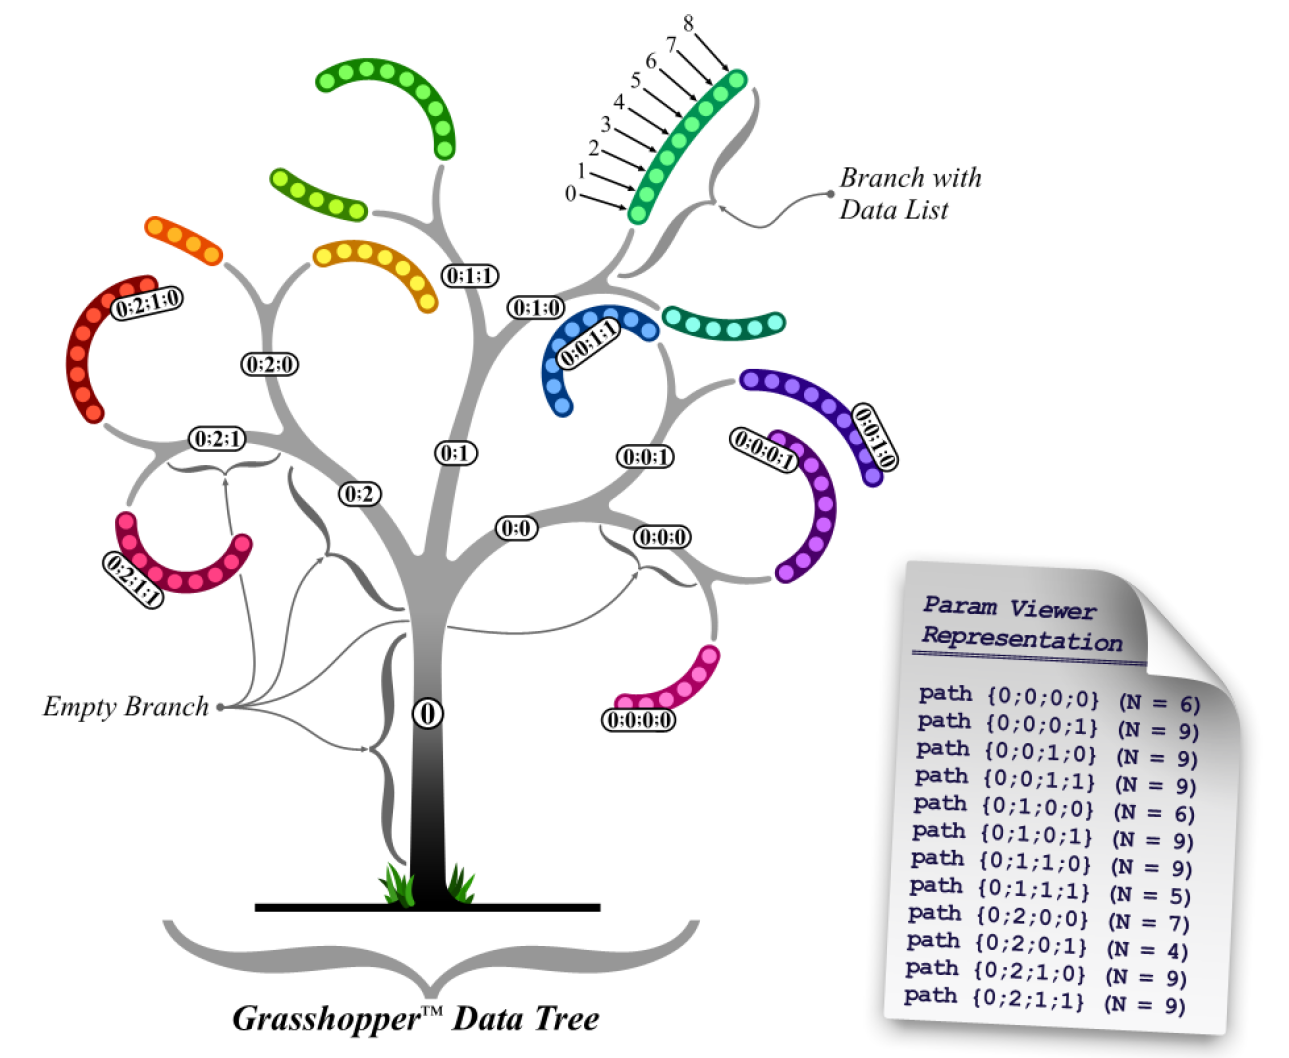 Grasshopper Data Tree.png